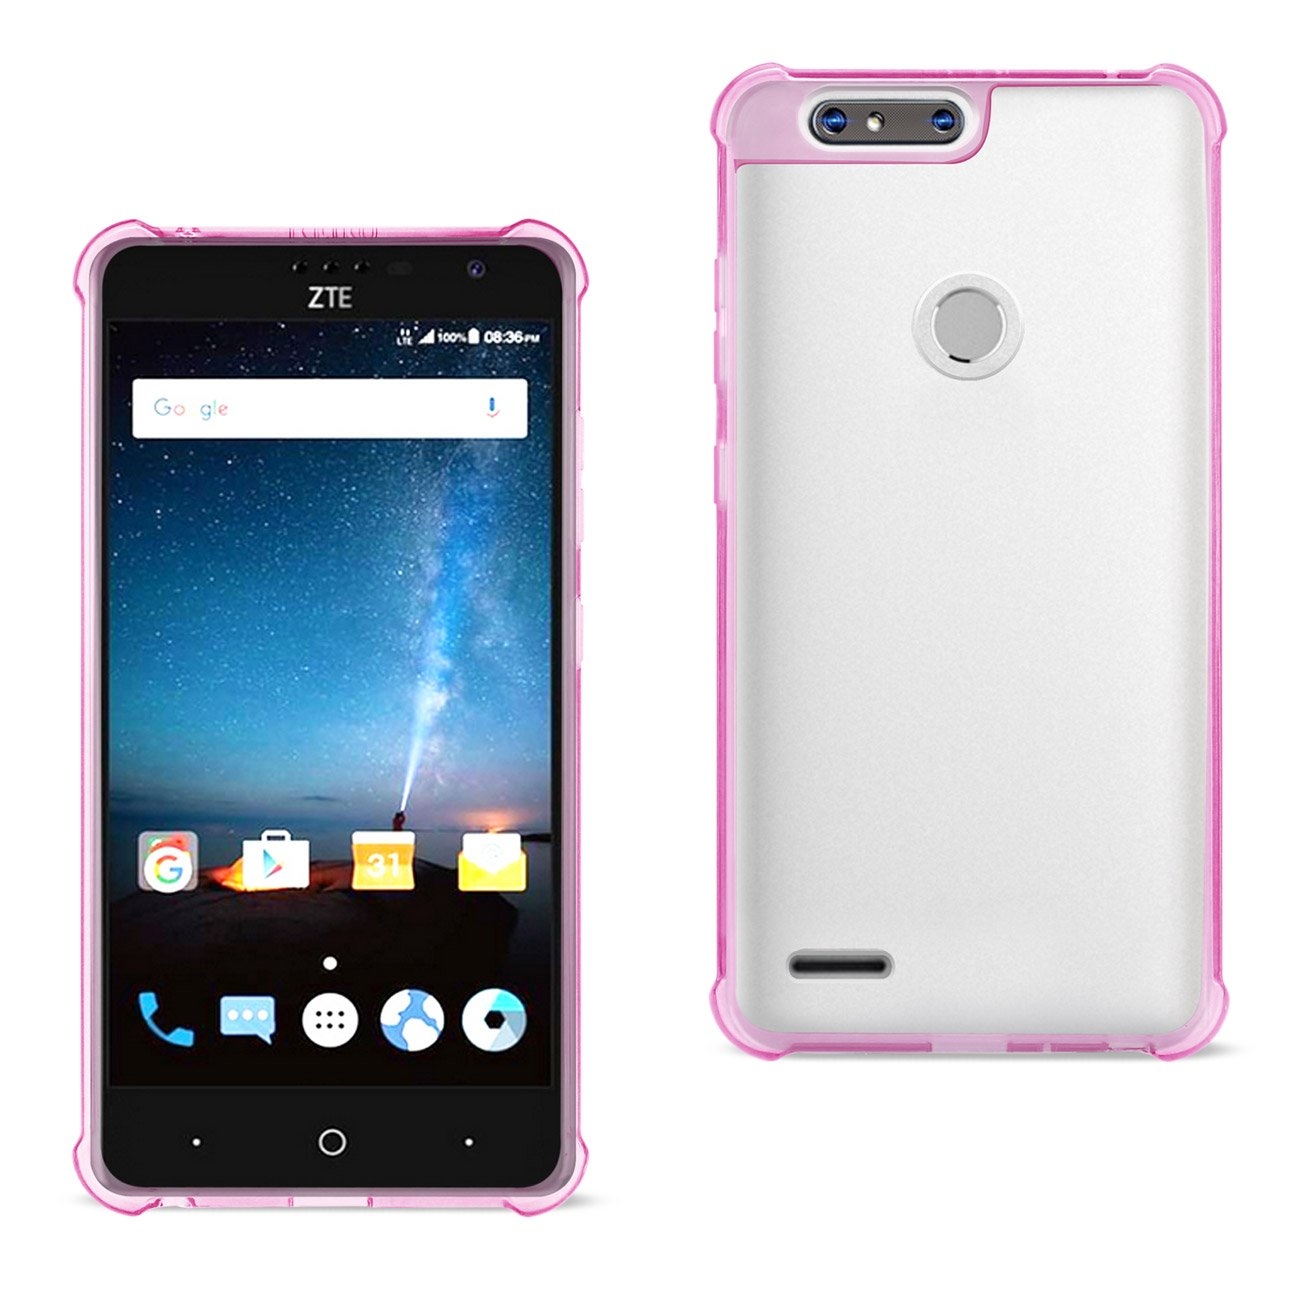 ISTIK ZTE Blade Z MAX/Z982/ZTE Sequoia Clear Bumper Case With Air Cushion Protection In Clear Hot Pink